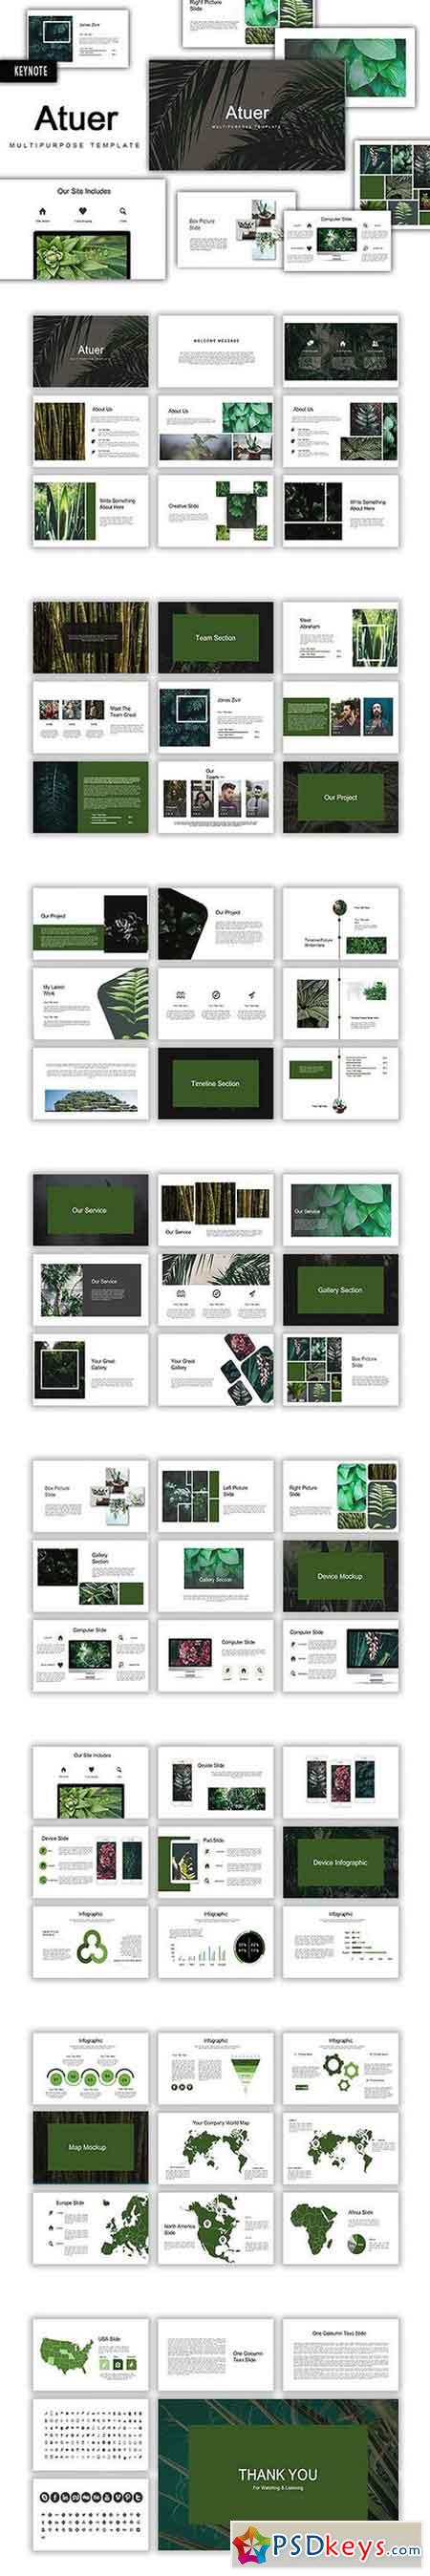 Atuer Keynote Template 1543757